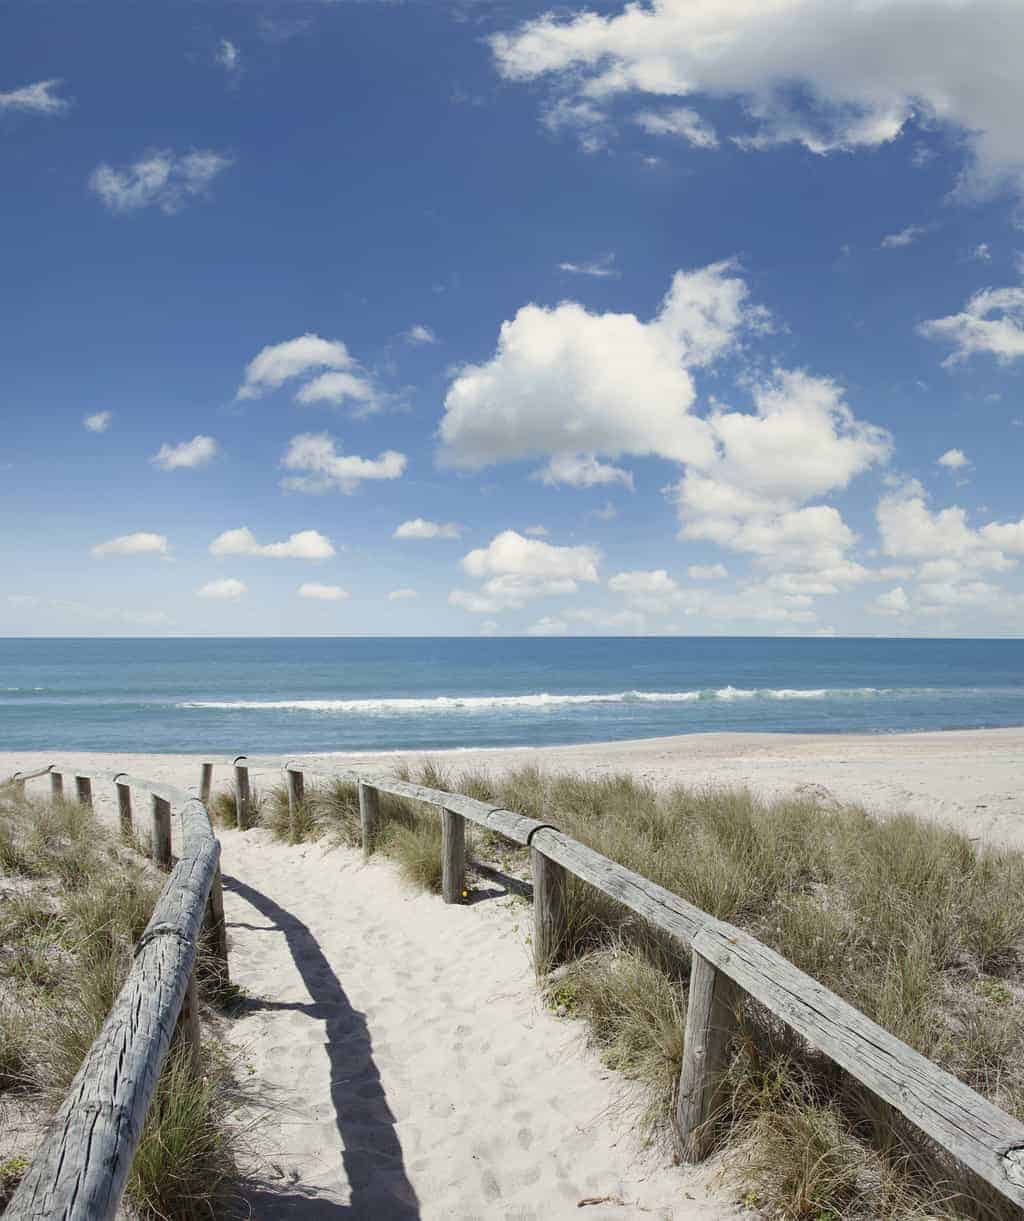 What Are Interesting Places To Visit In Florida: Places To Go With Your Kids In Pensacola Beach